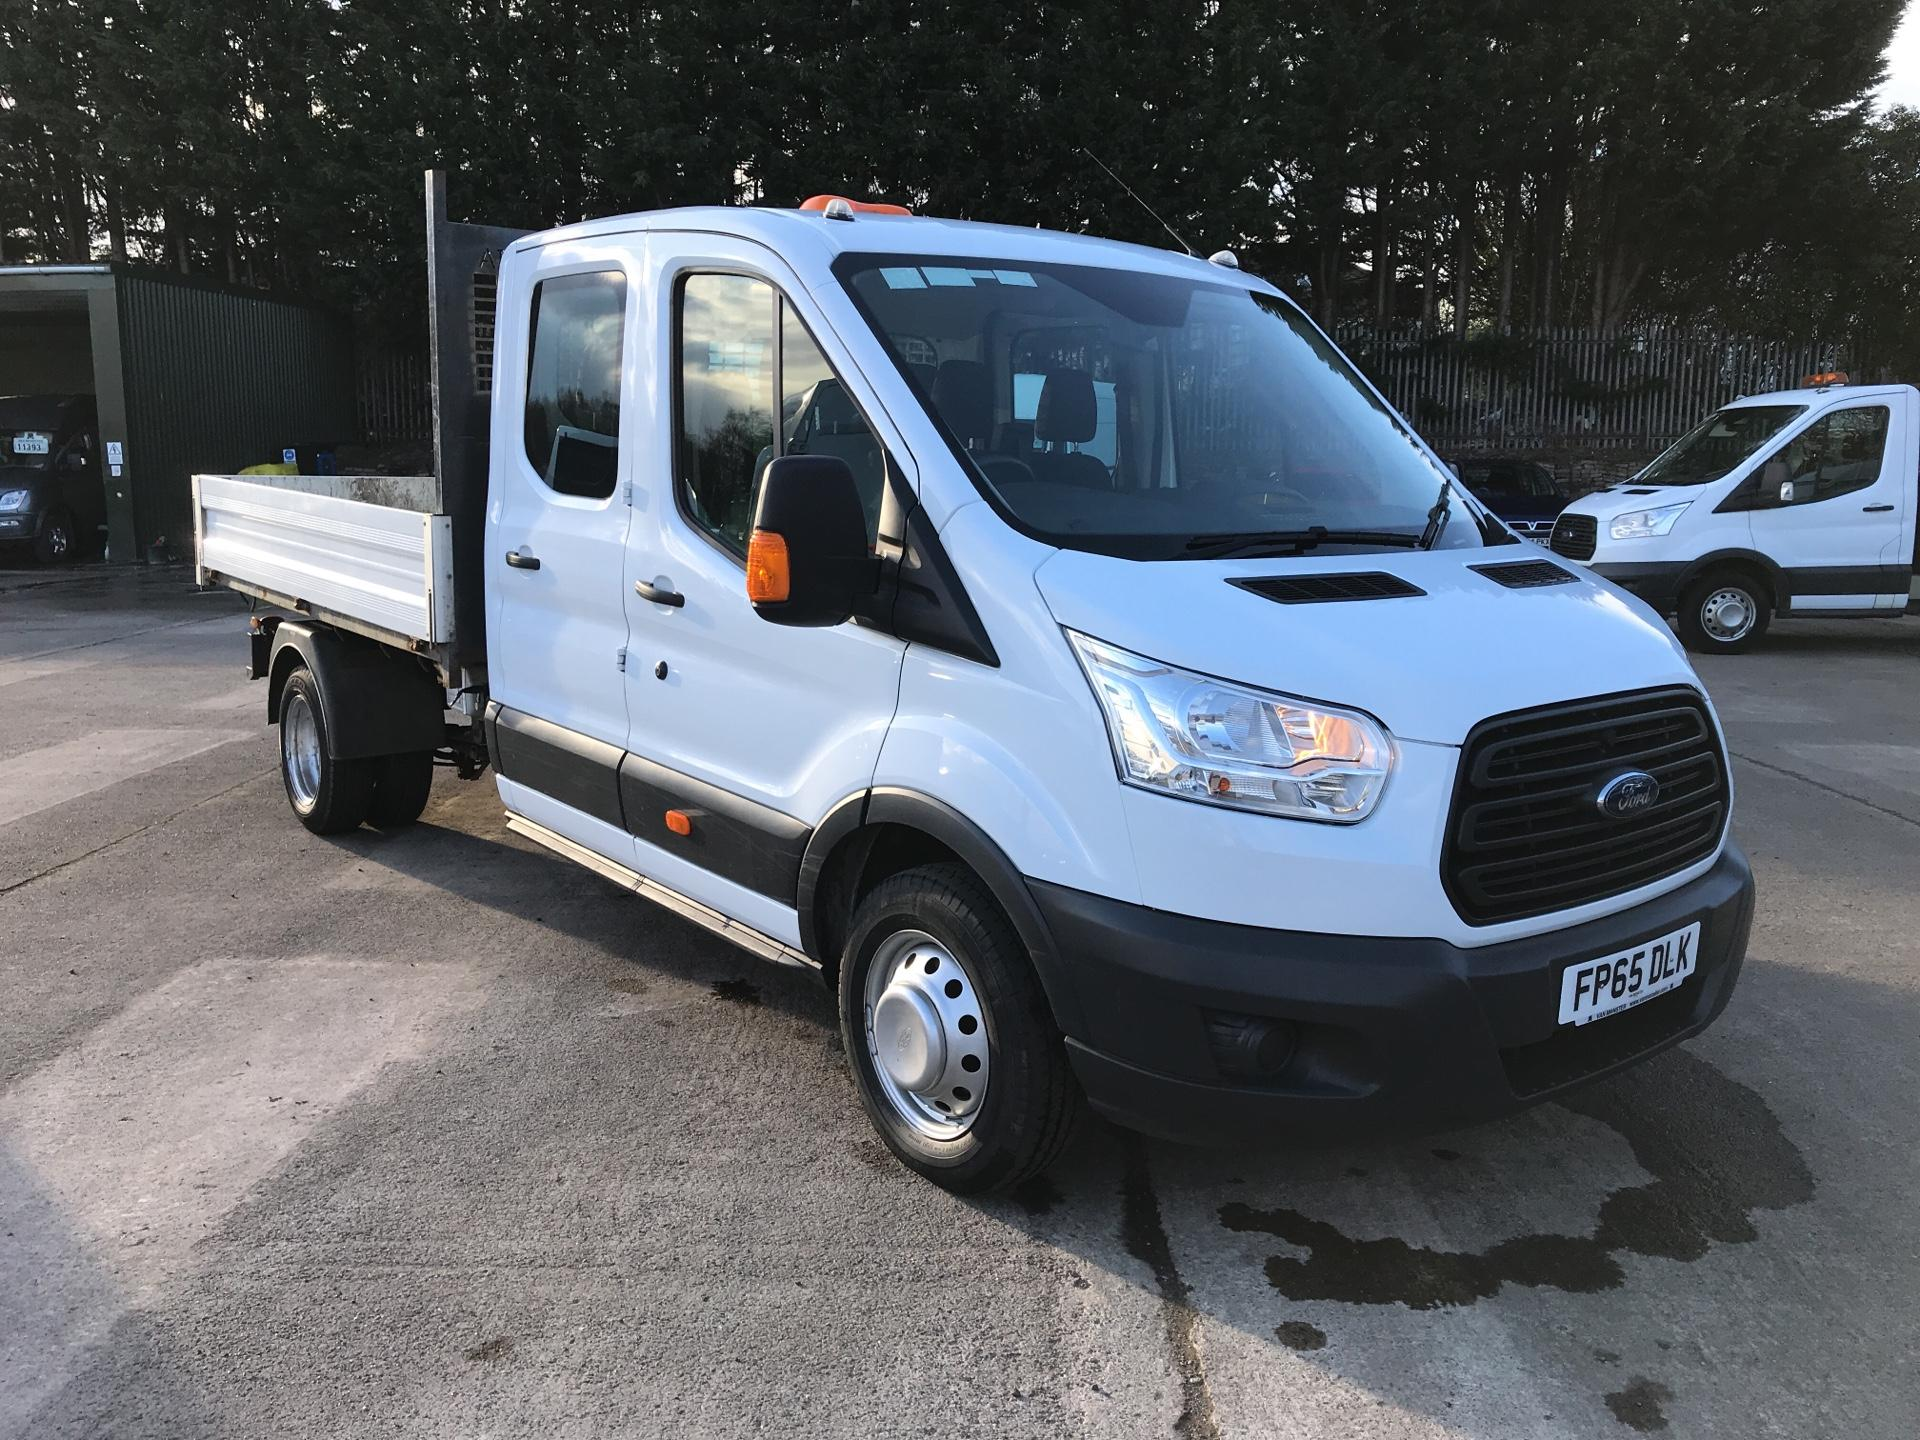 2016 Ford Transit 350 L3 DOUBLE CAB TIPPER 125PS EURO 5 (FP65DLK)